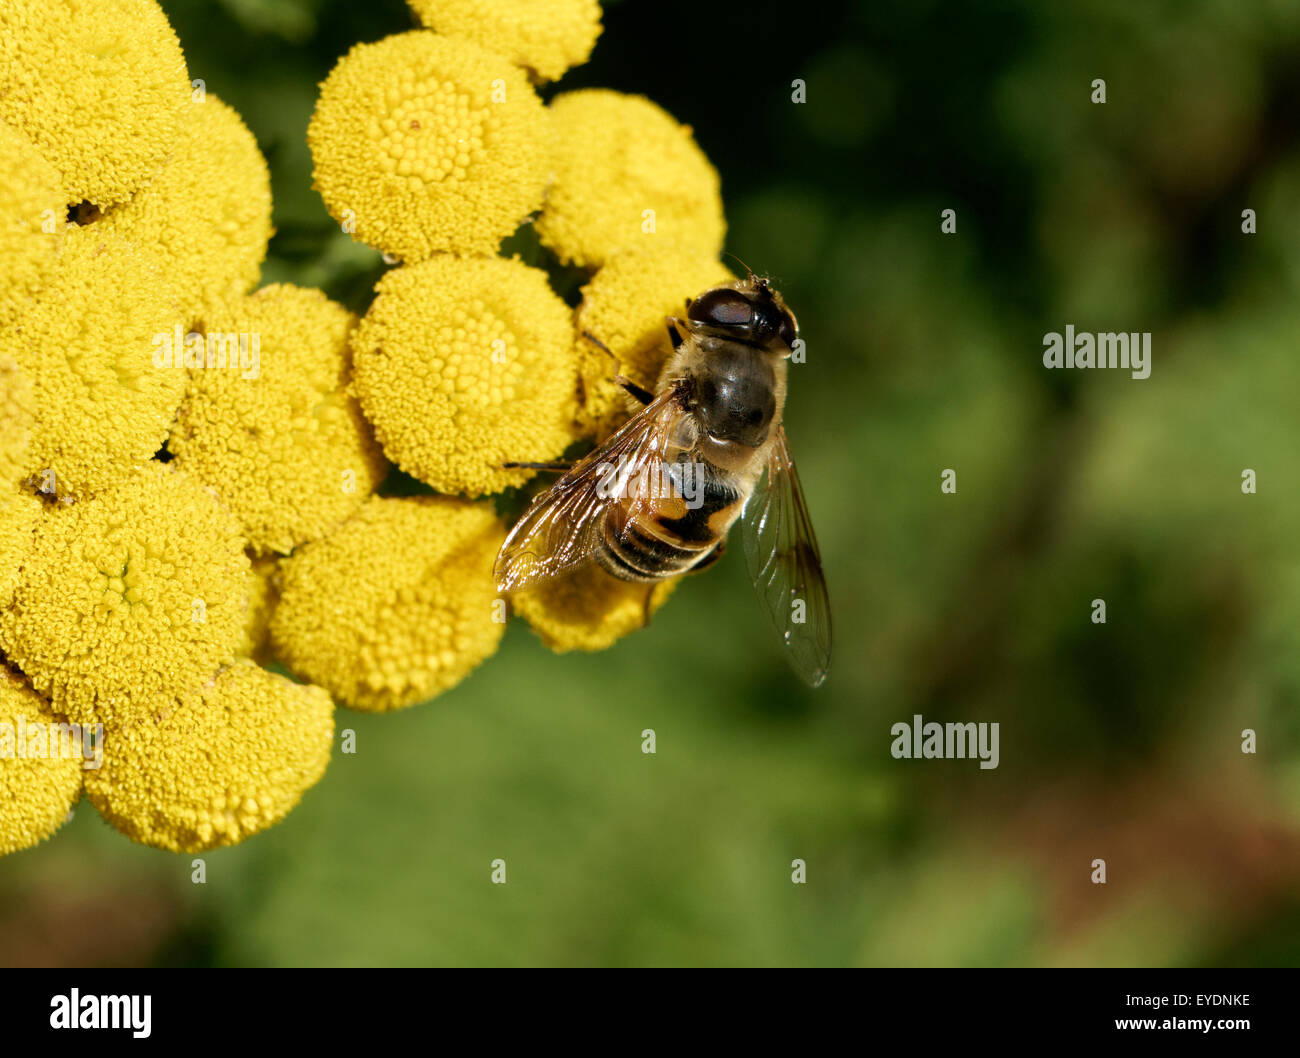 drone-fly-eristalis-tenax-feeding-on-com